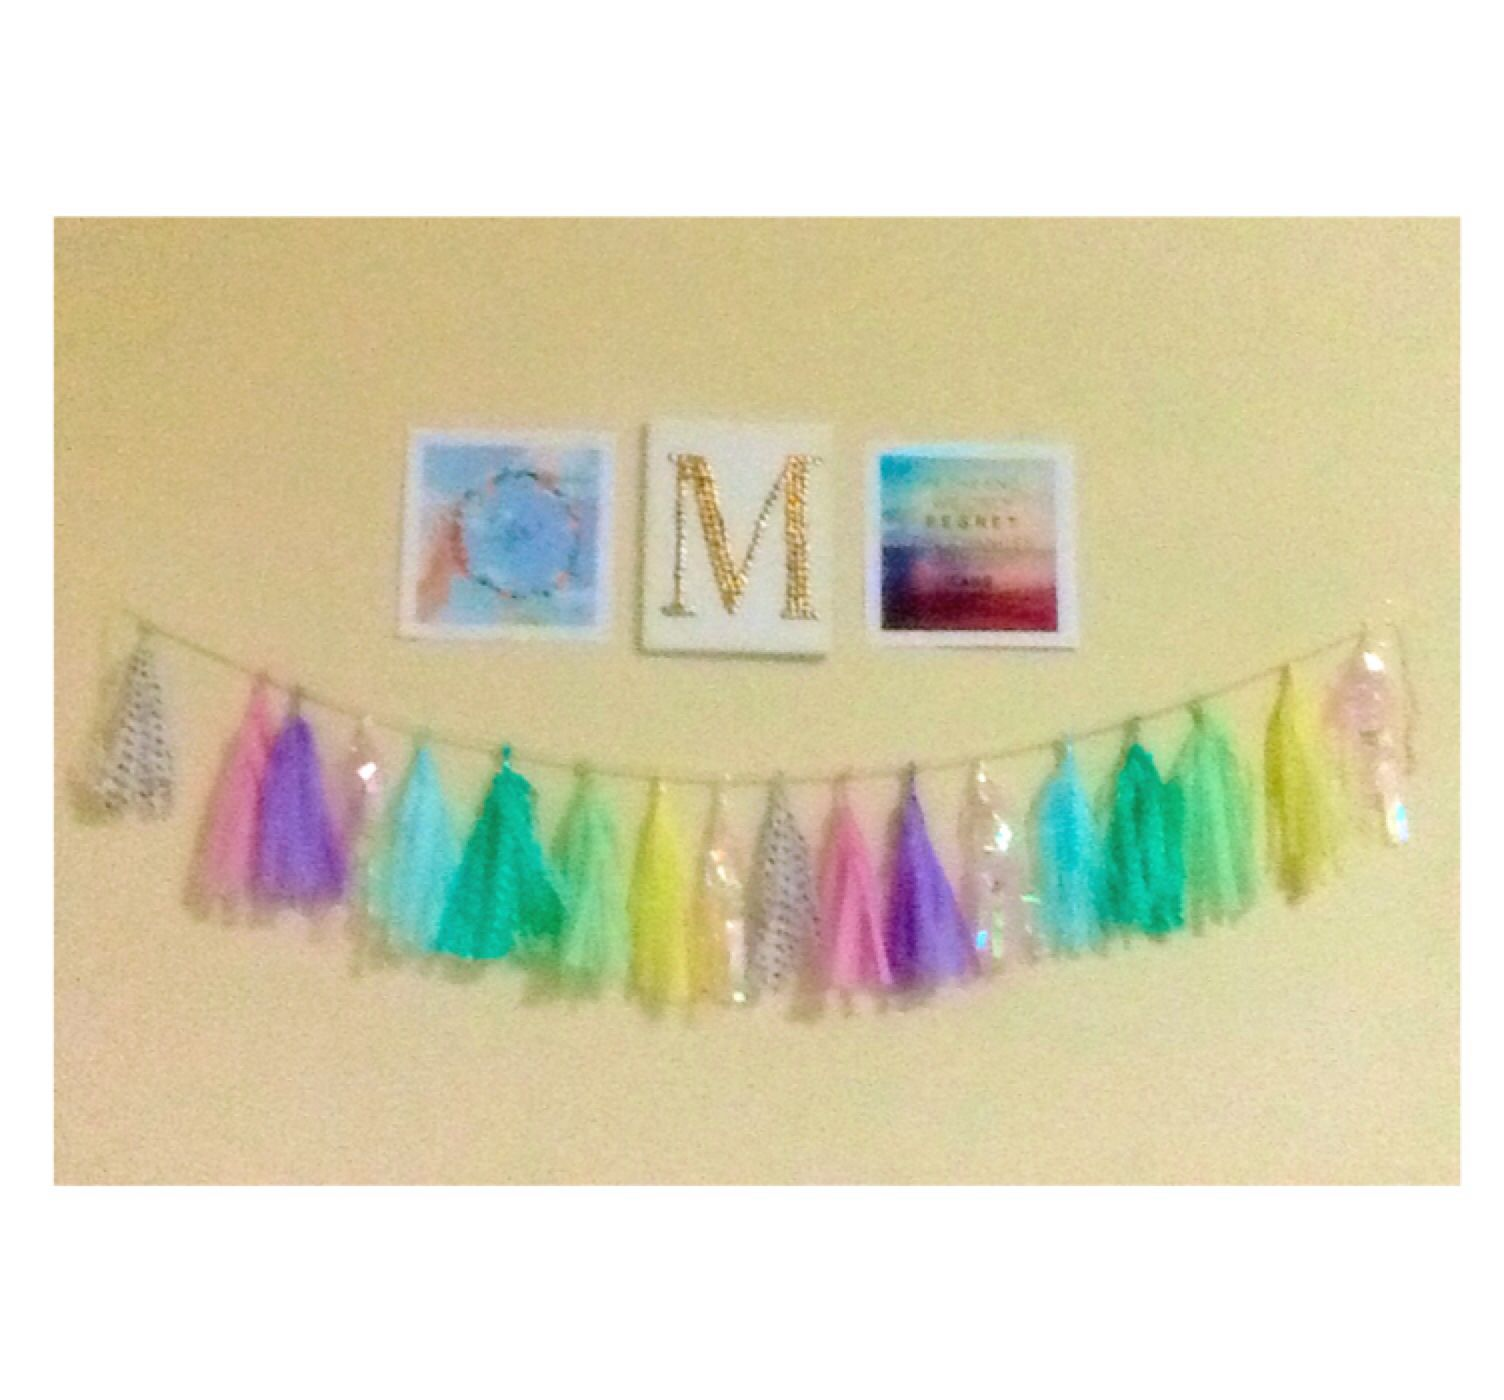 ✨So here is my diy tissue paper garland that only cost me $3 to make. Cute right?✨